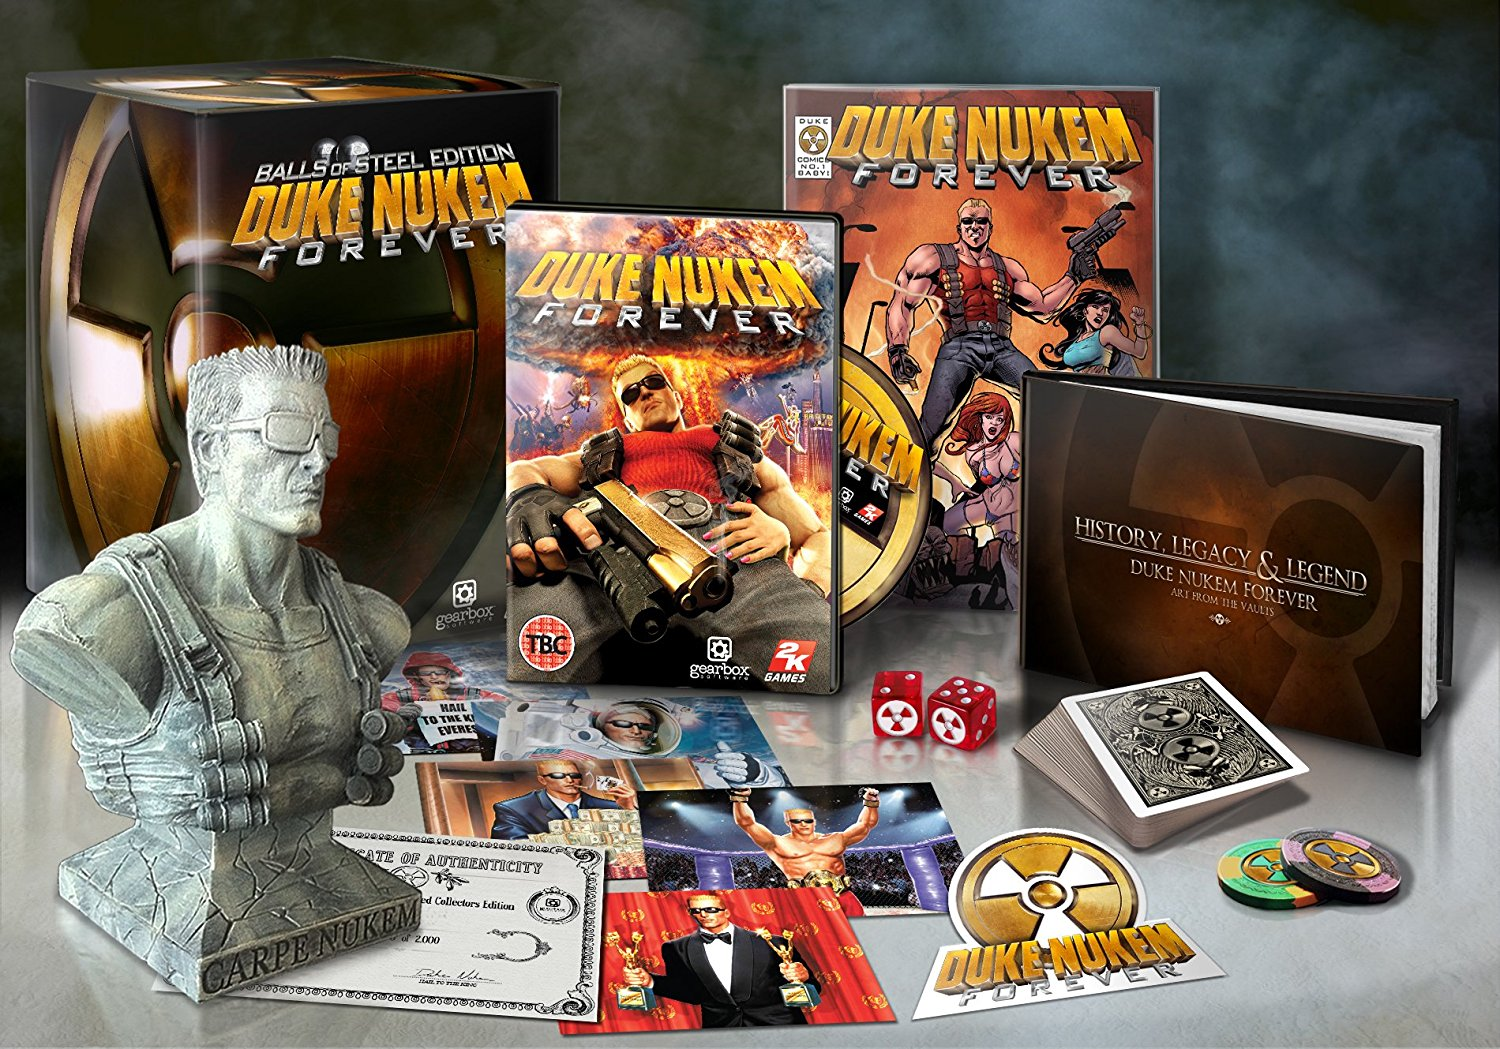 Duke Nukem Forever: Balls of Steel - Collectors' Edition